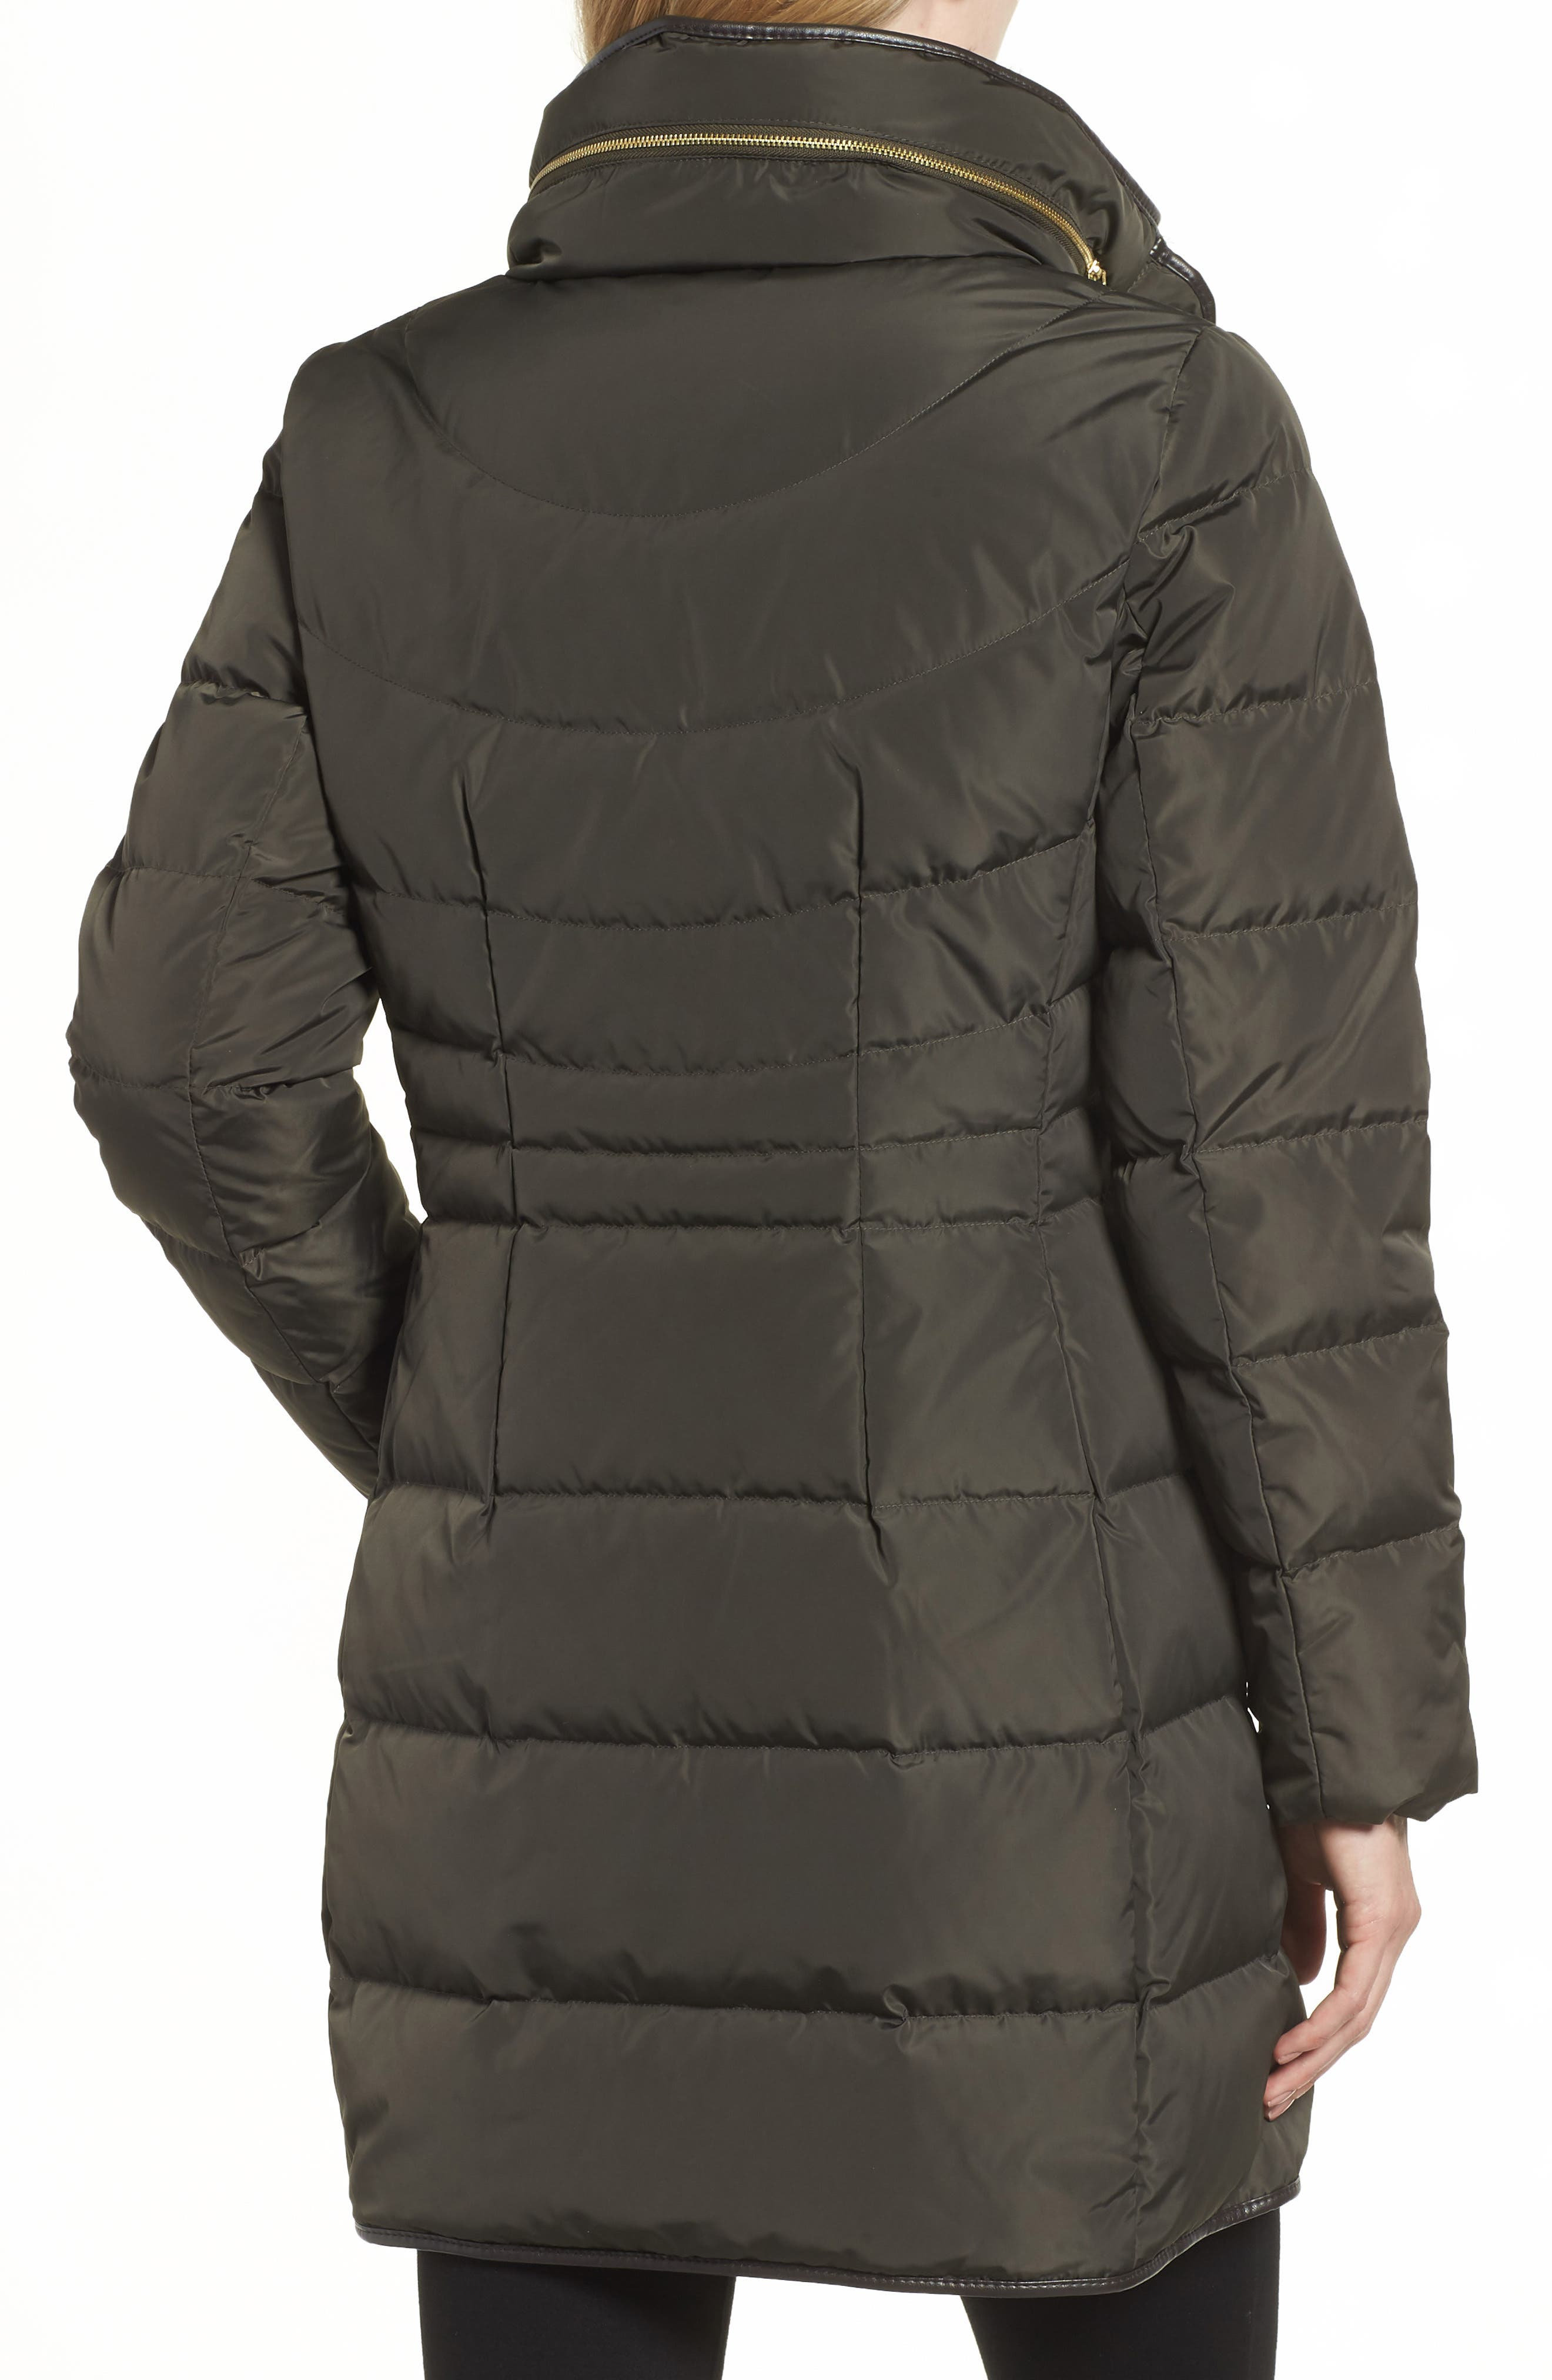 Cole Haan Quilted Down & Feather Fill Jacket with Faux Fur Trim,                             Alternate thumbnail 2, color,                             FOREST